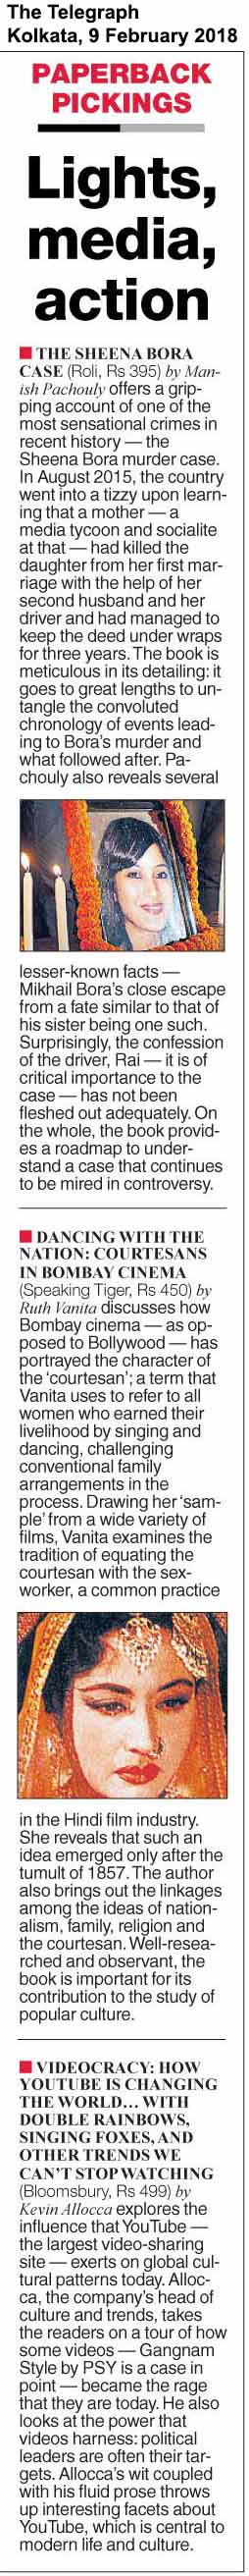 The Sheena Bora Case<br><span>The Telegraph, Kolkata</span>